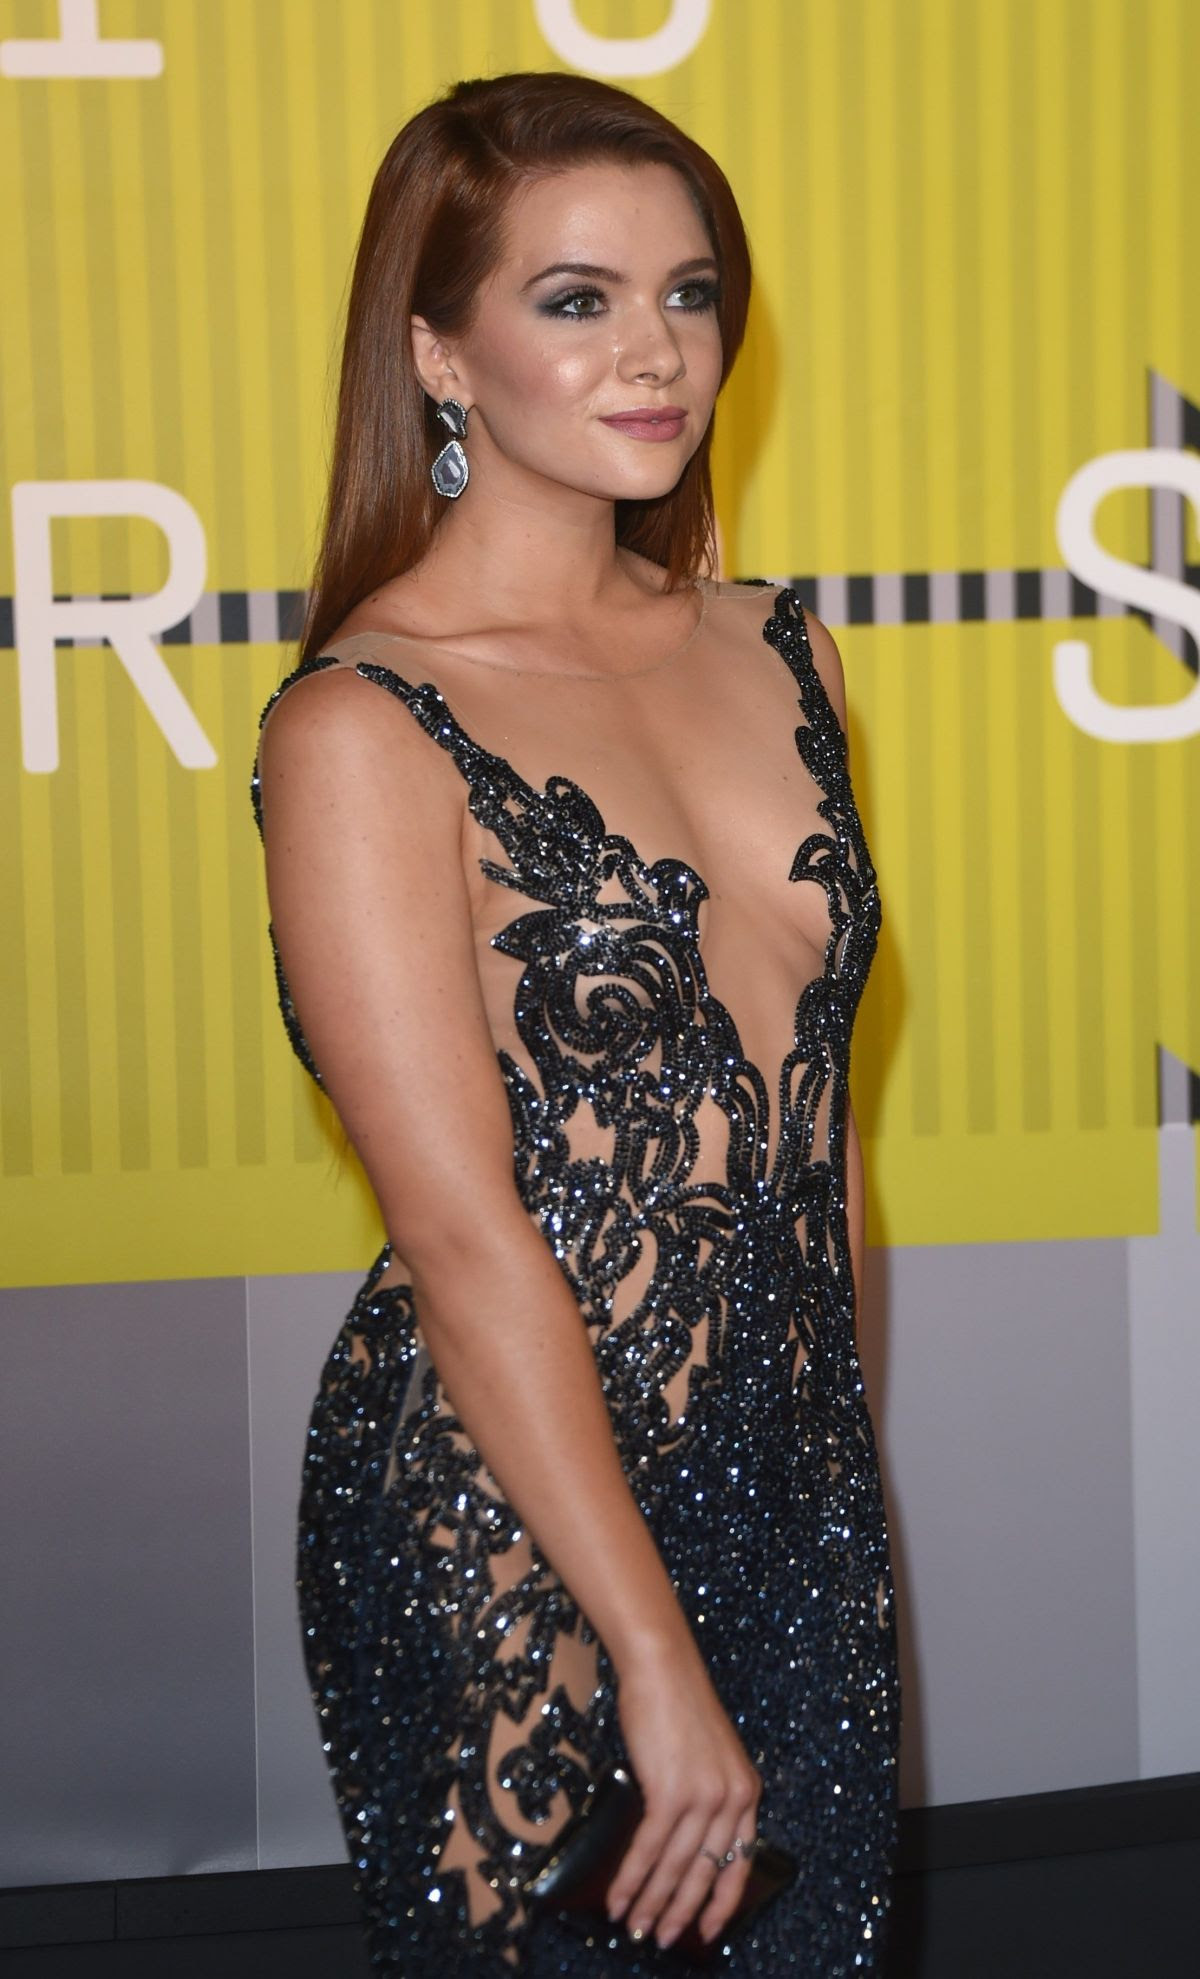 http://www.celebzz.com/wp-content/uploads/2015/08/katie-stevens-at-2015-mtv-video-music-awards_8.jpg